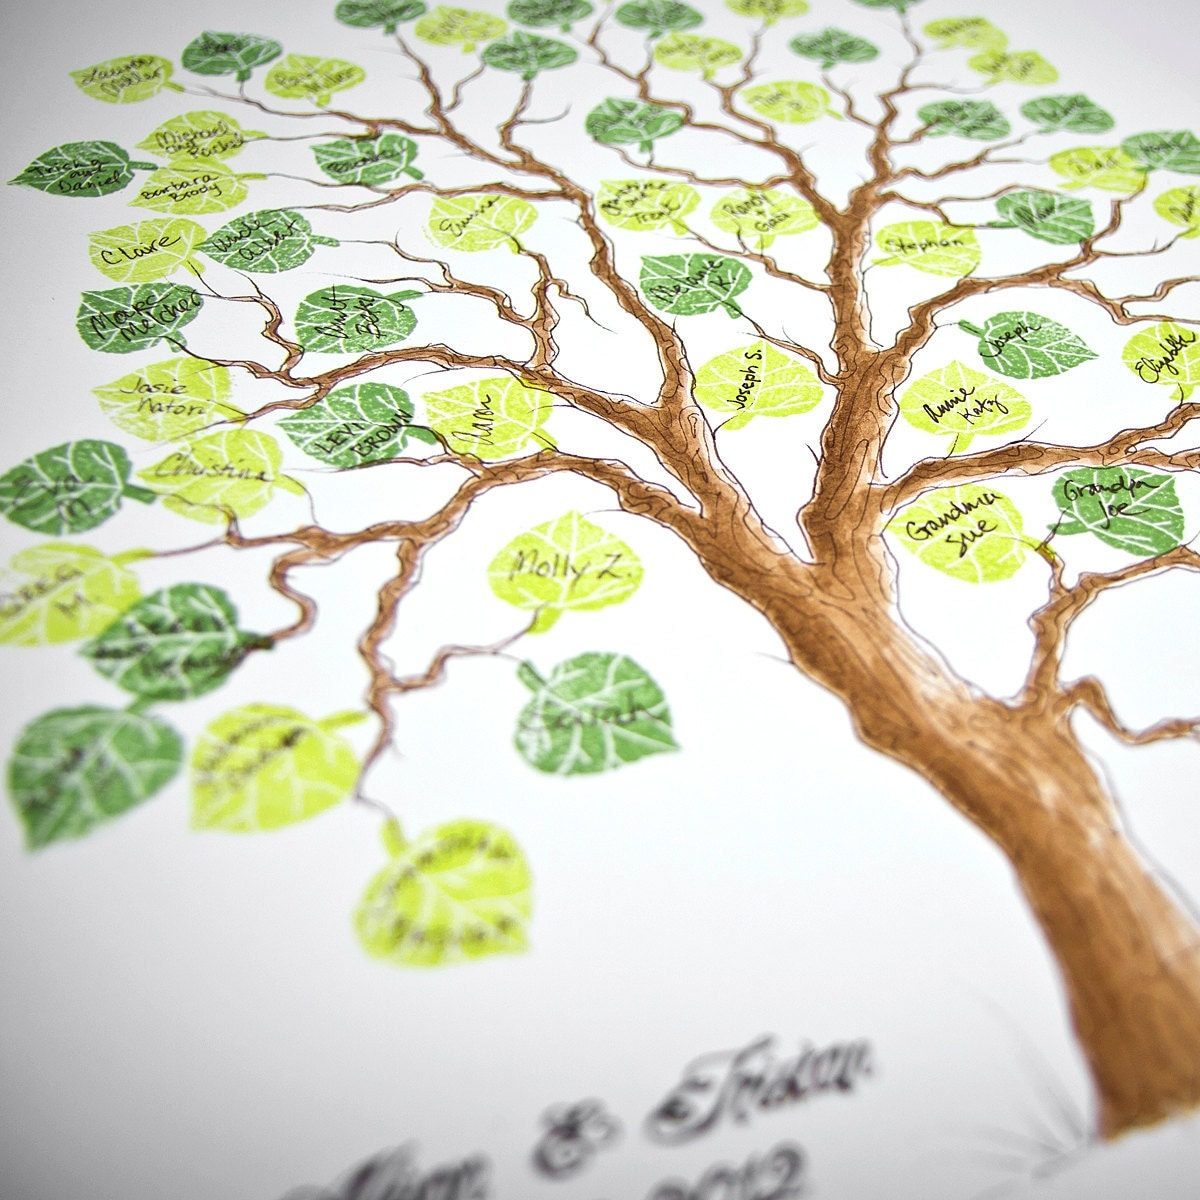 Wedding Tree Genealogy Chart By Melangeriedesign On Etsy: Wedding Tree Guest Book MEDIUM Family Tree Original Watercolor